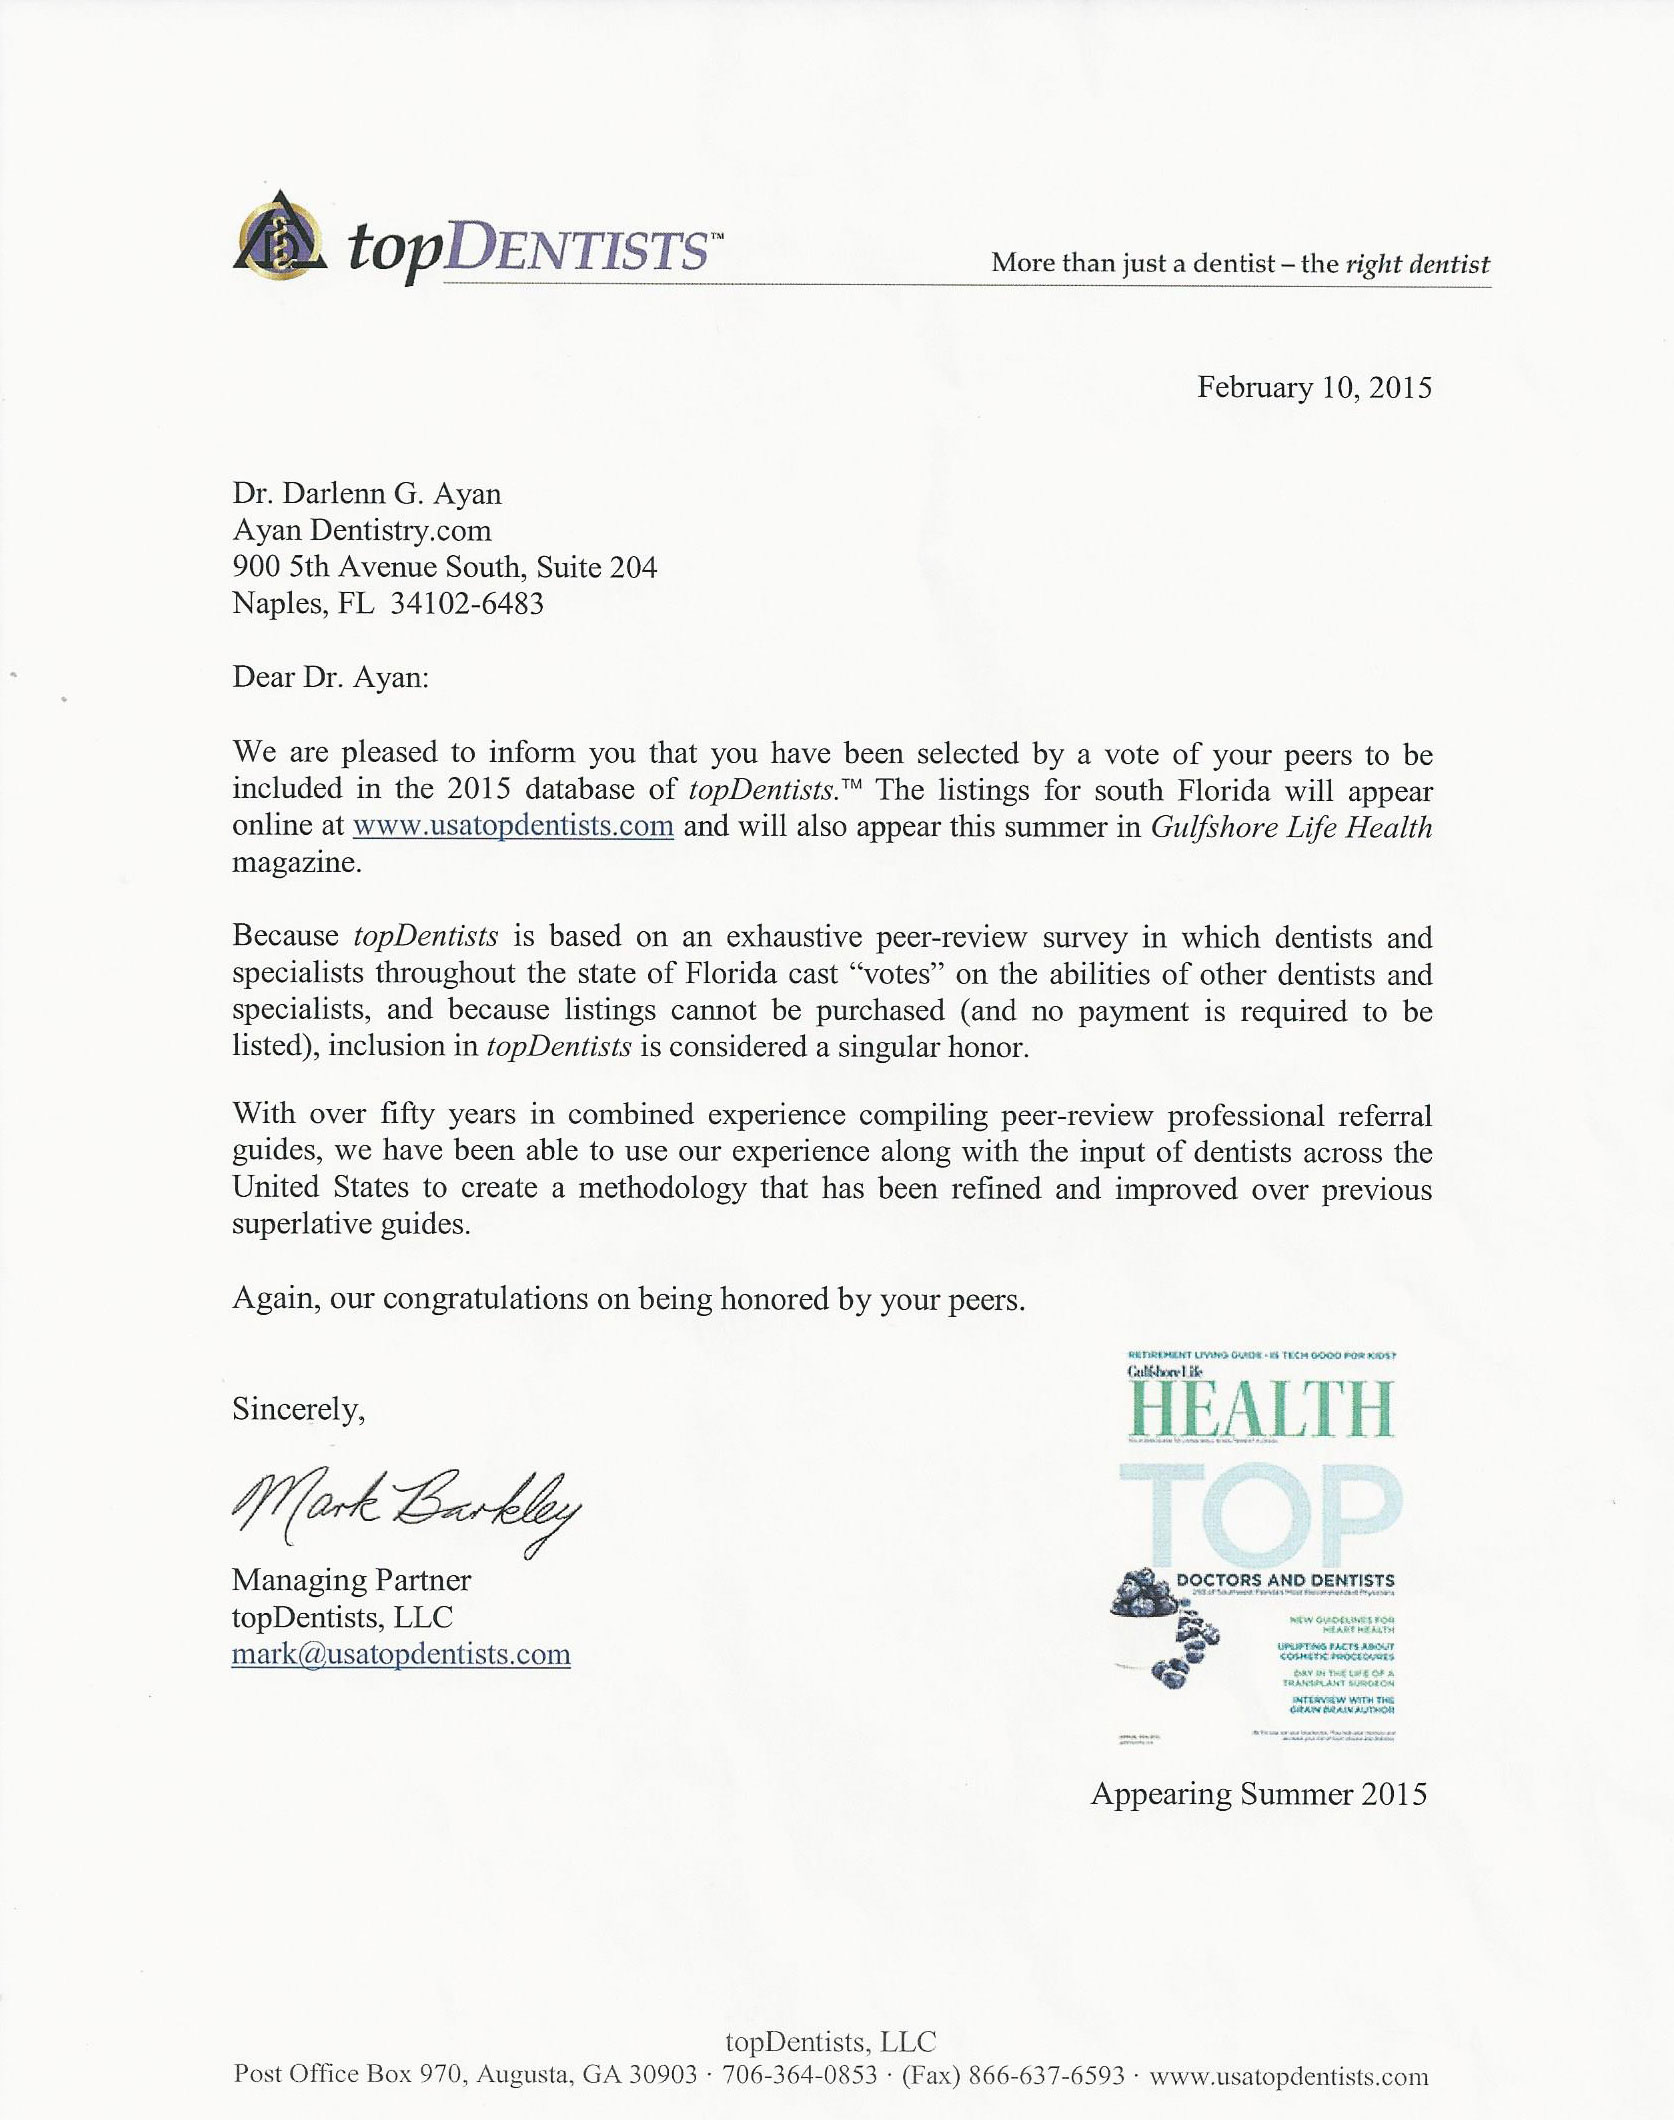 Image of letter awarding Dr. Ayan the Top Dentist Award for 2015